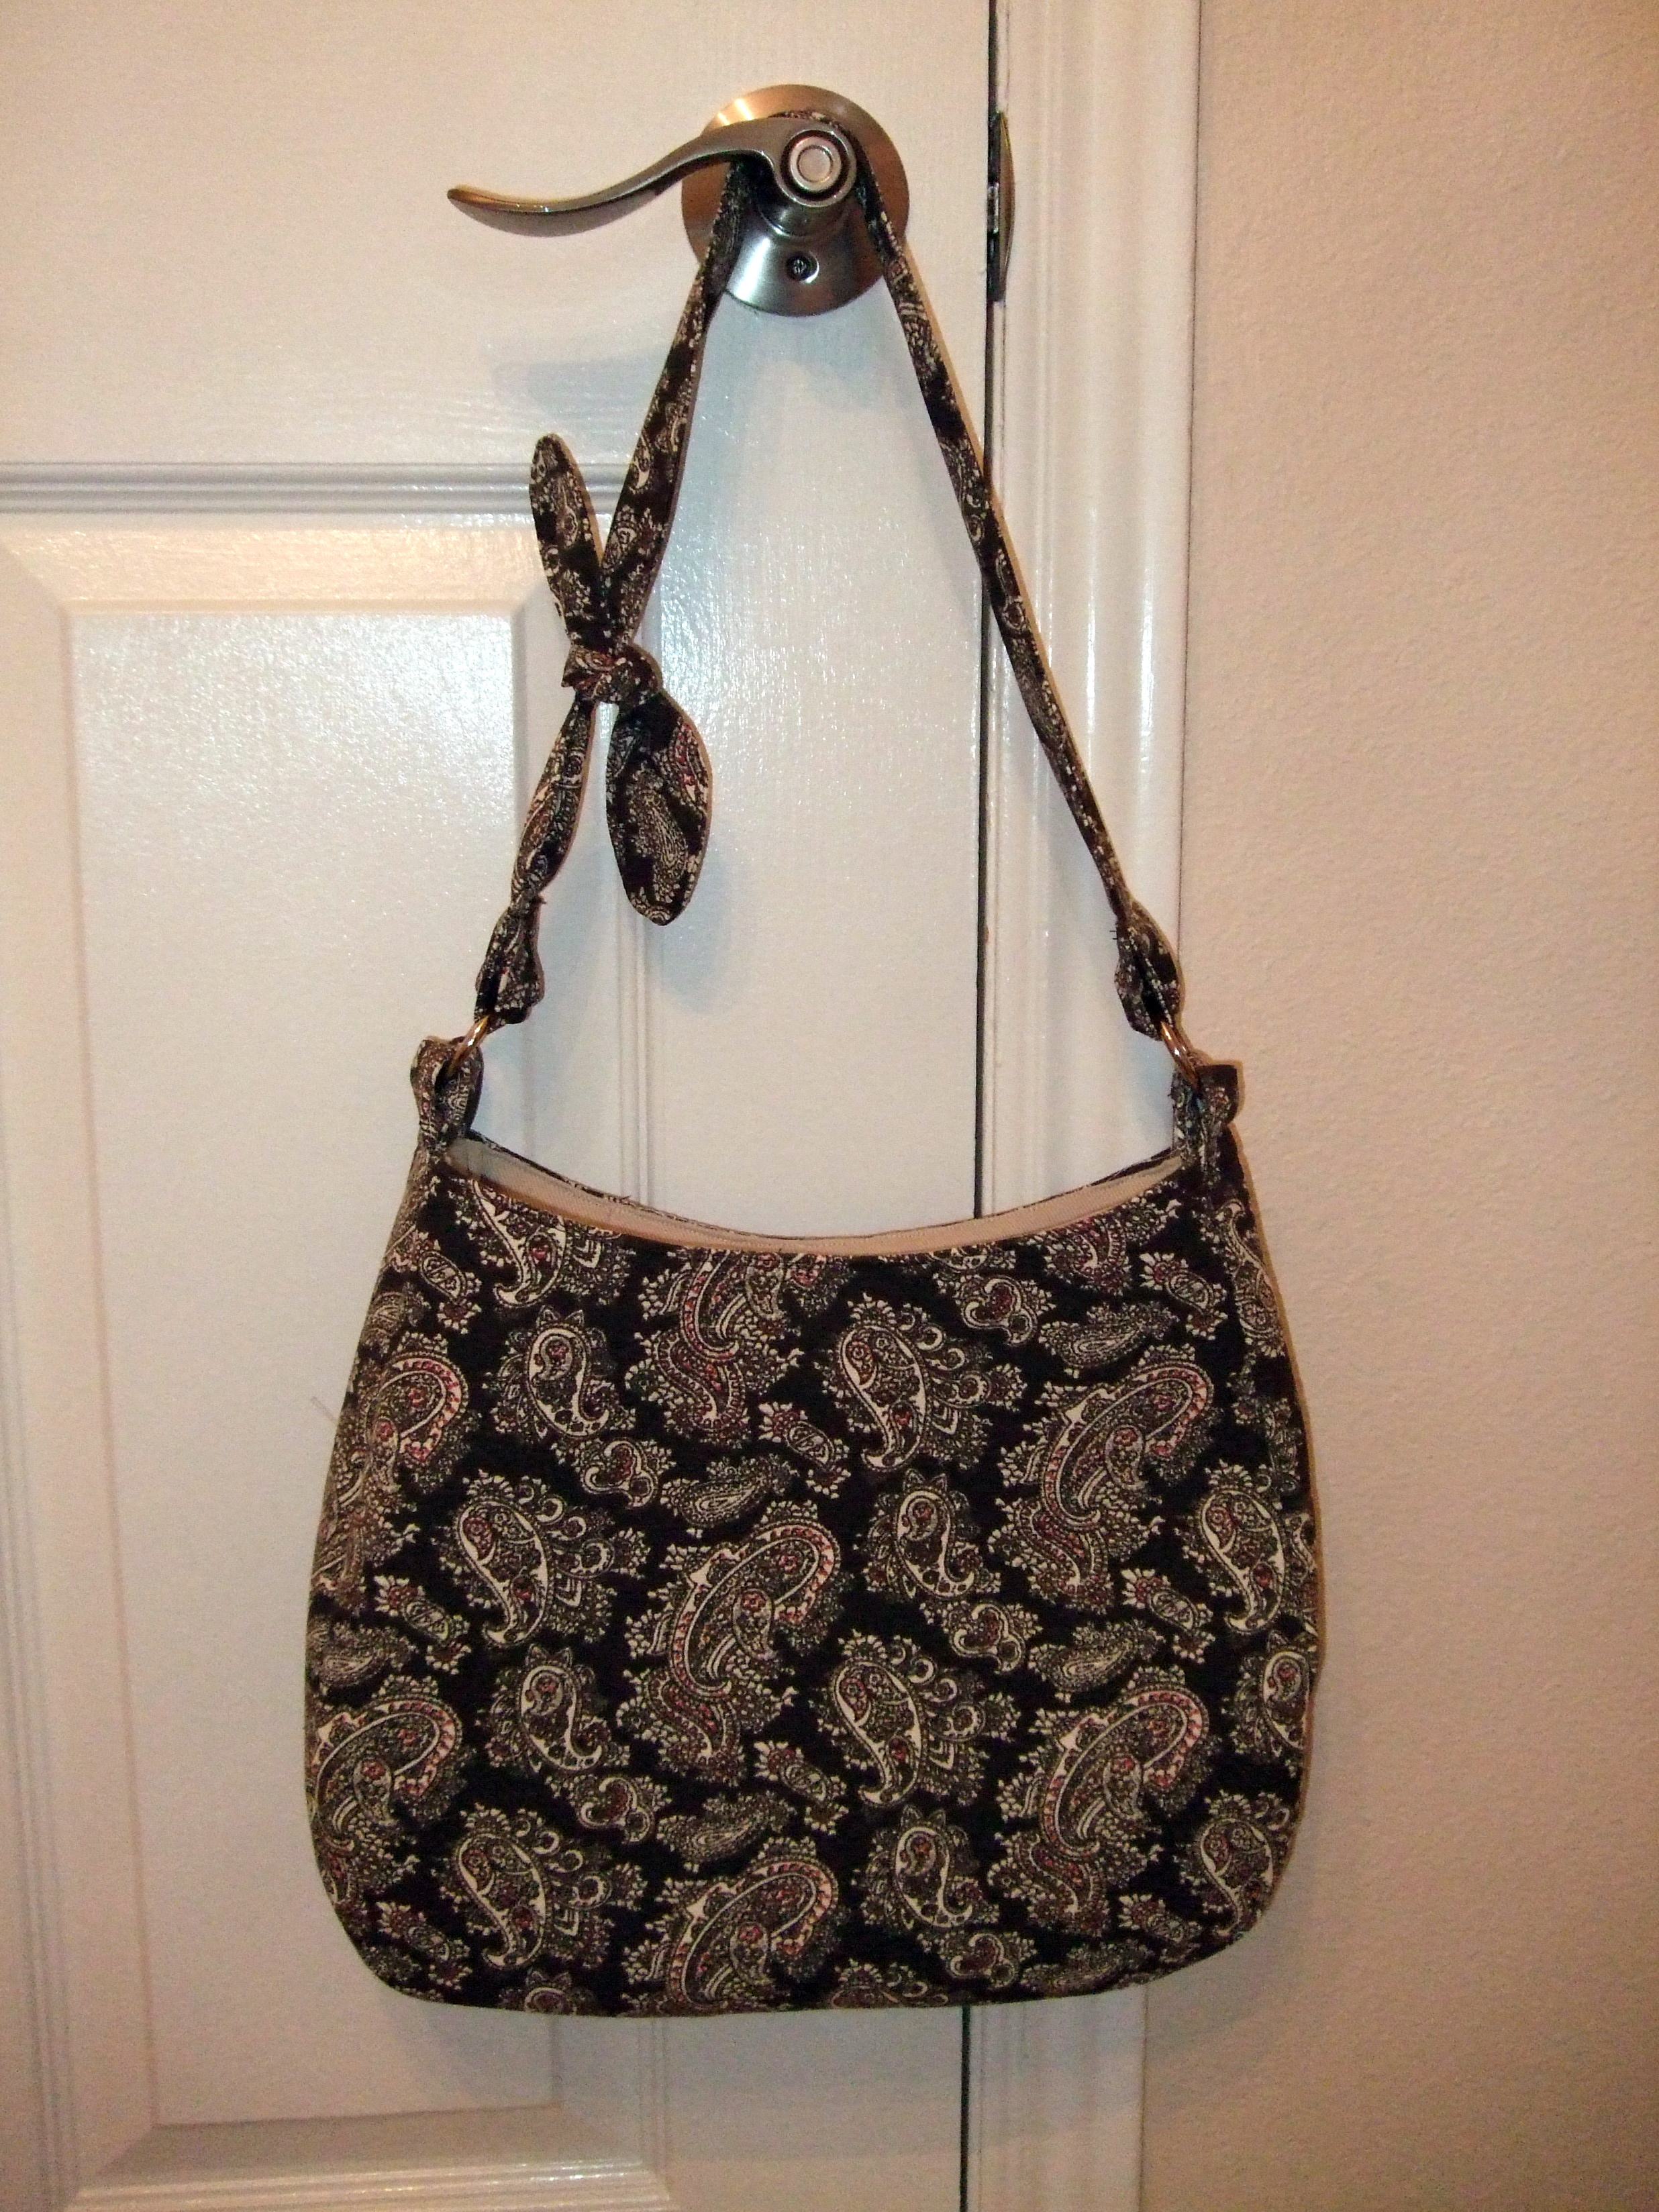 Free Patterns For Handbags : Pics Photos - Free Purse Patterns Free Tote Bag Patterns Free Vintage